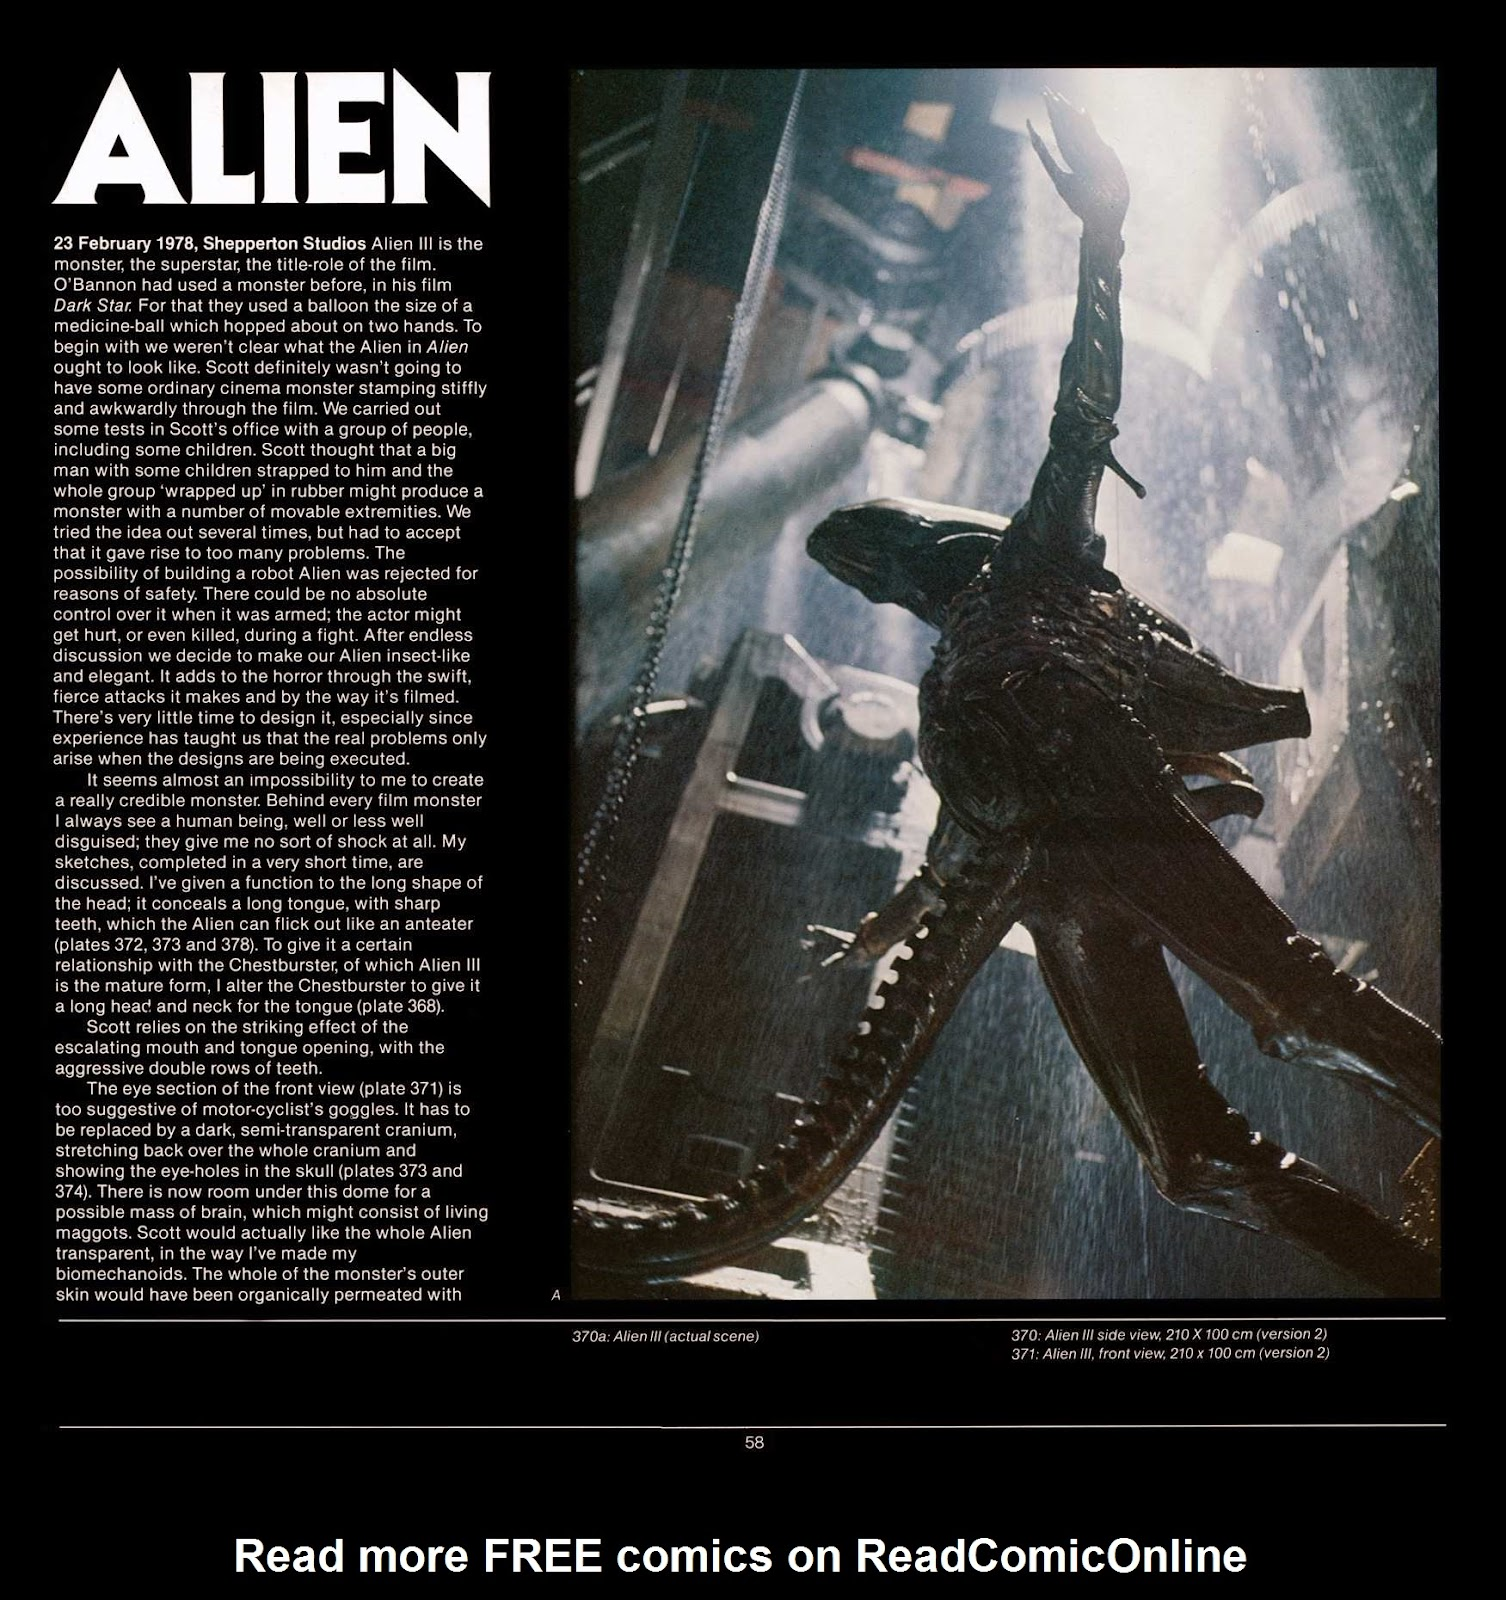 Read online Giger's Alien comic -  Issue # TPB - 60